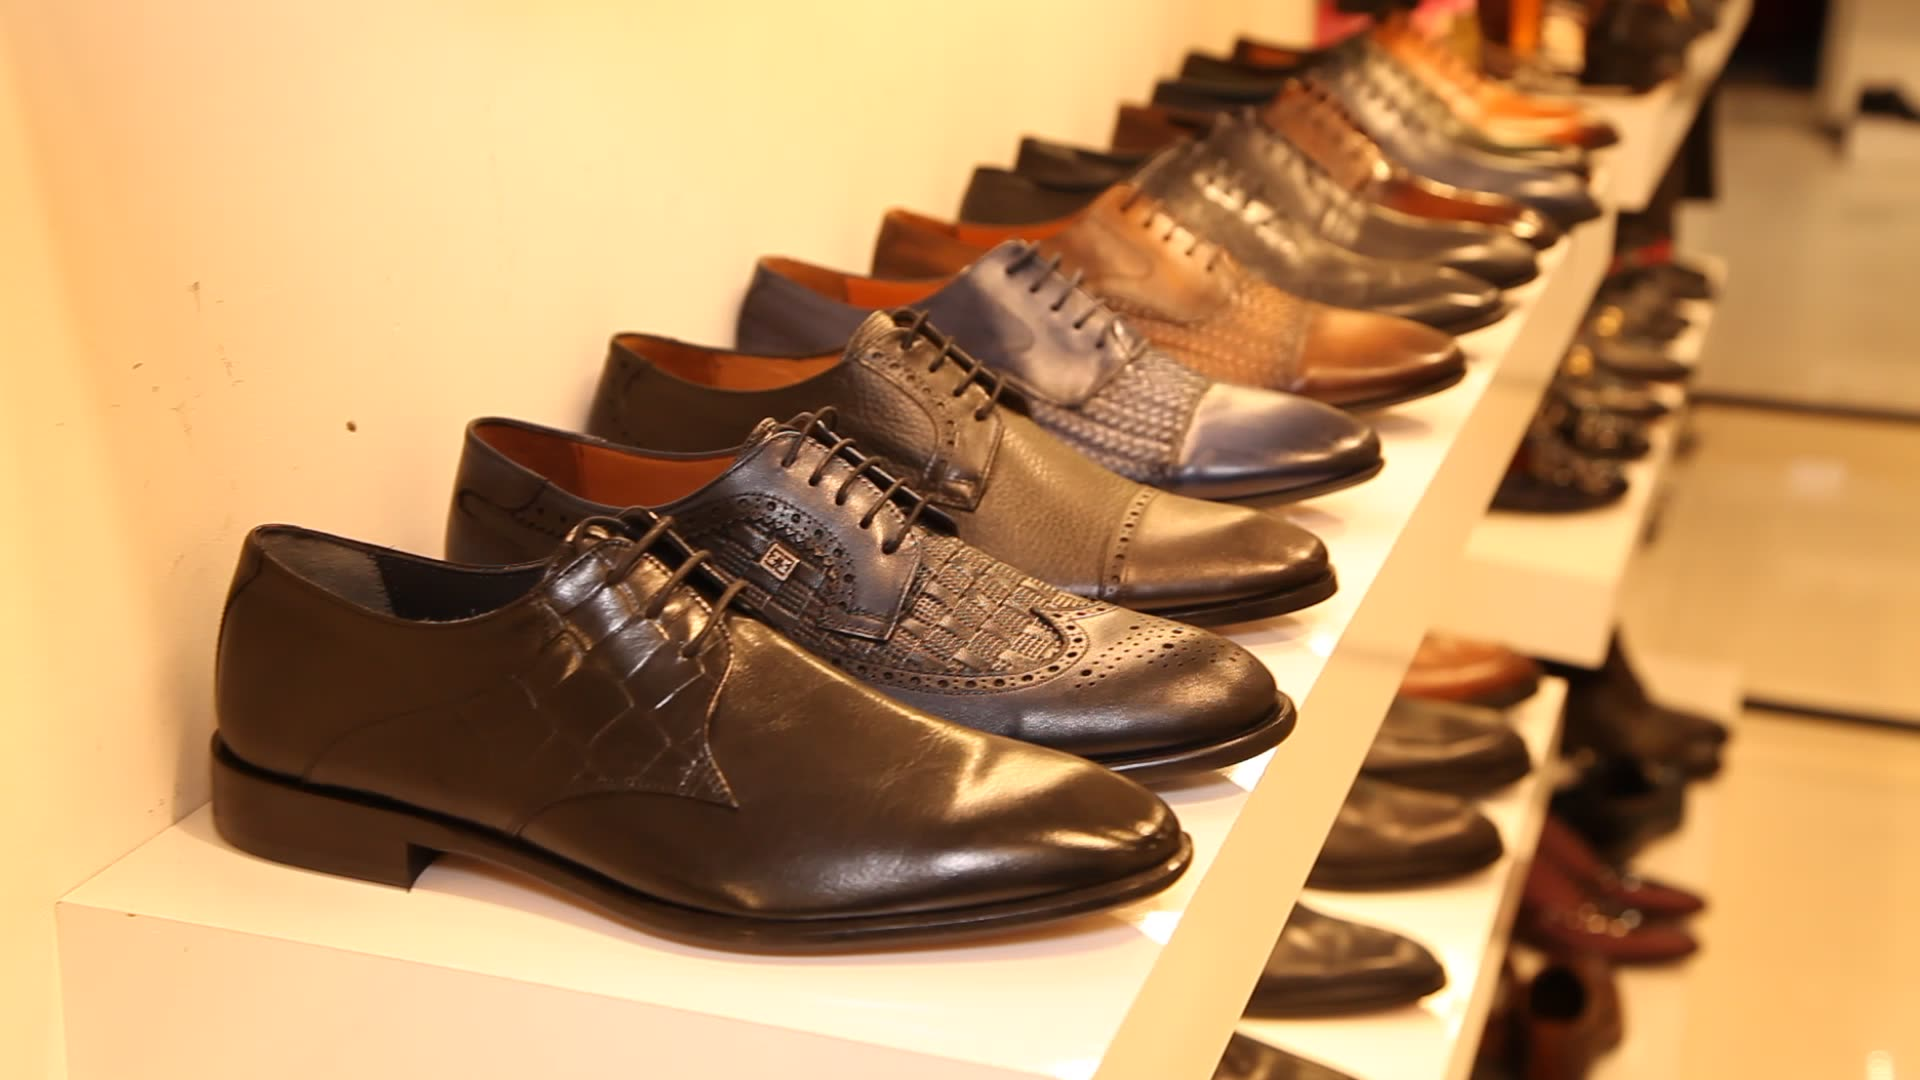 Classic Luxury branded top quality italian mens dress shoes from Turkey Manufacturer